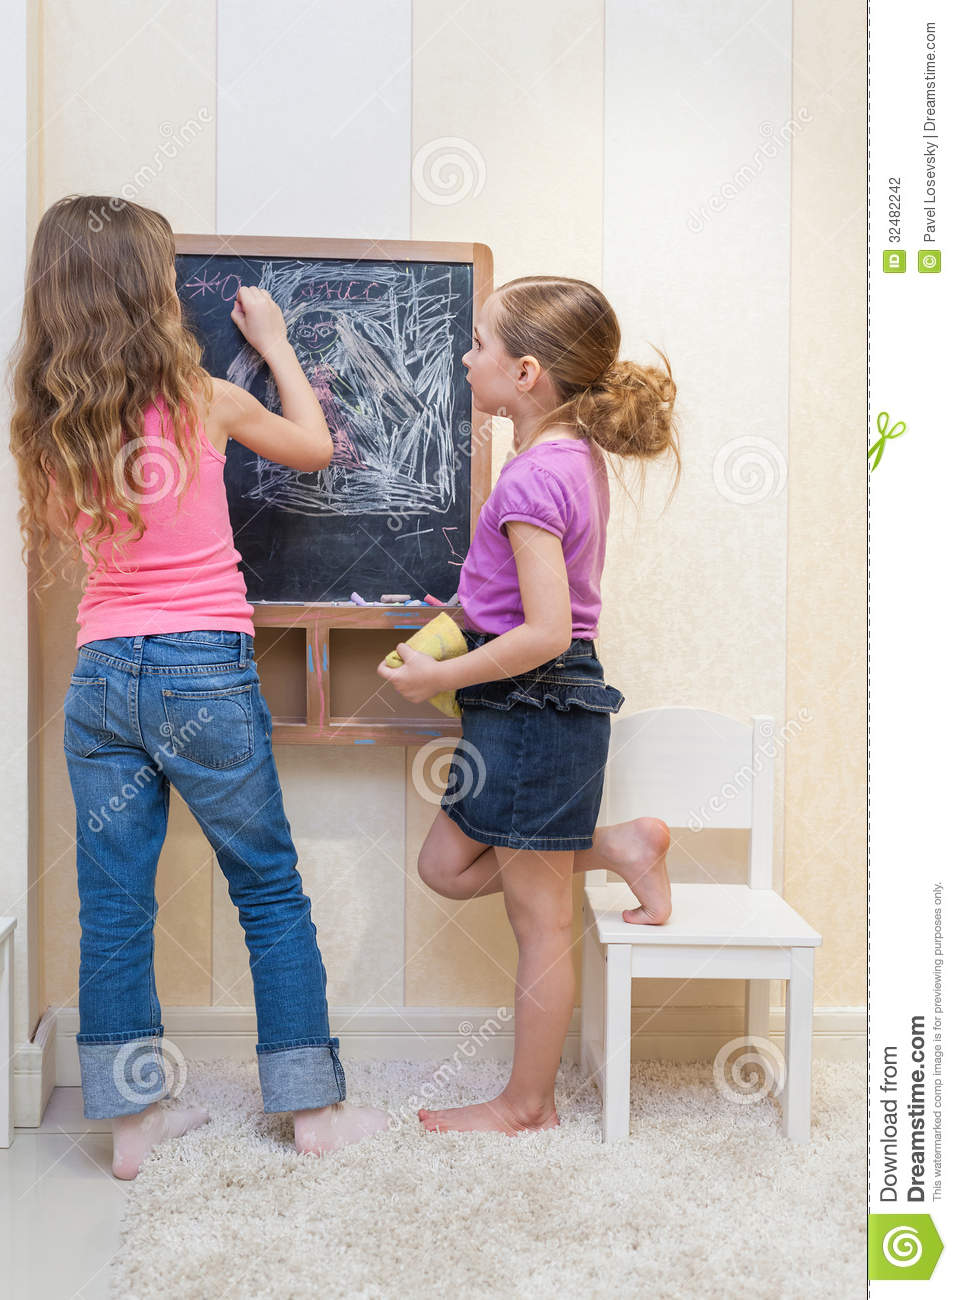 Little girls in the playroom paint on the blackboard